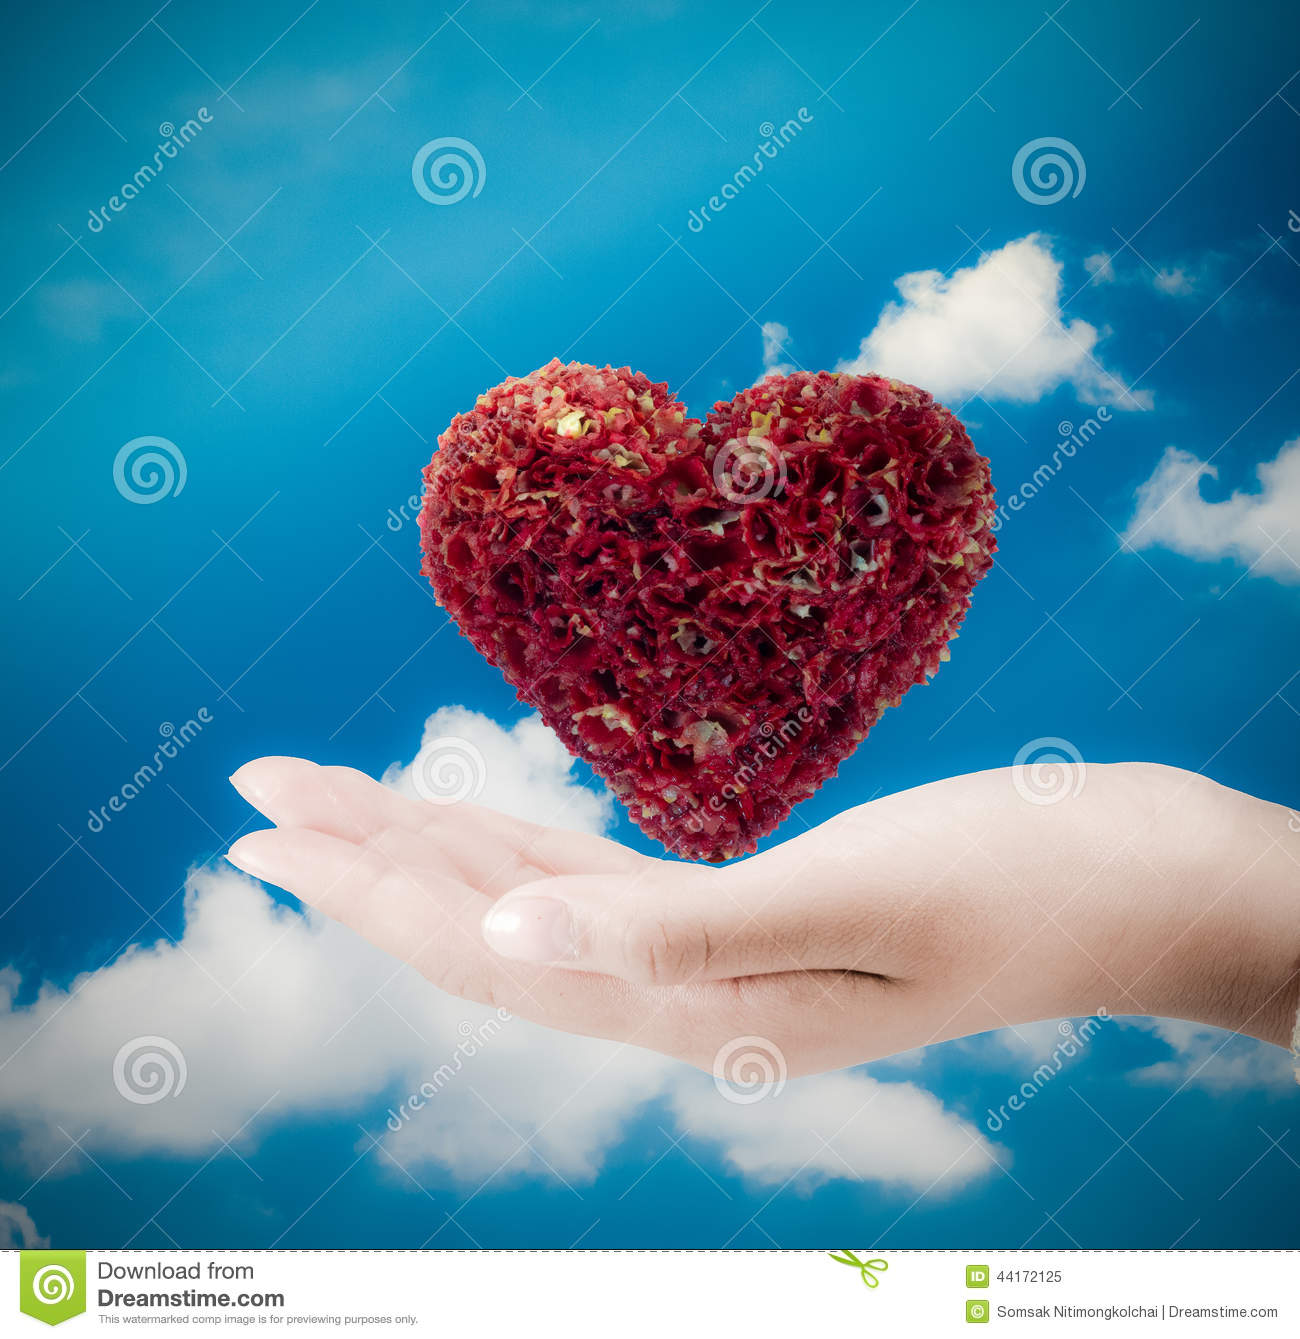 Heart on hand.Heart on the palm - love symbol